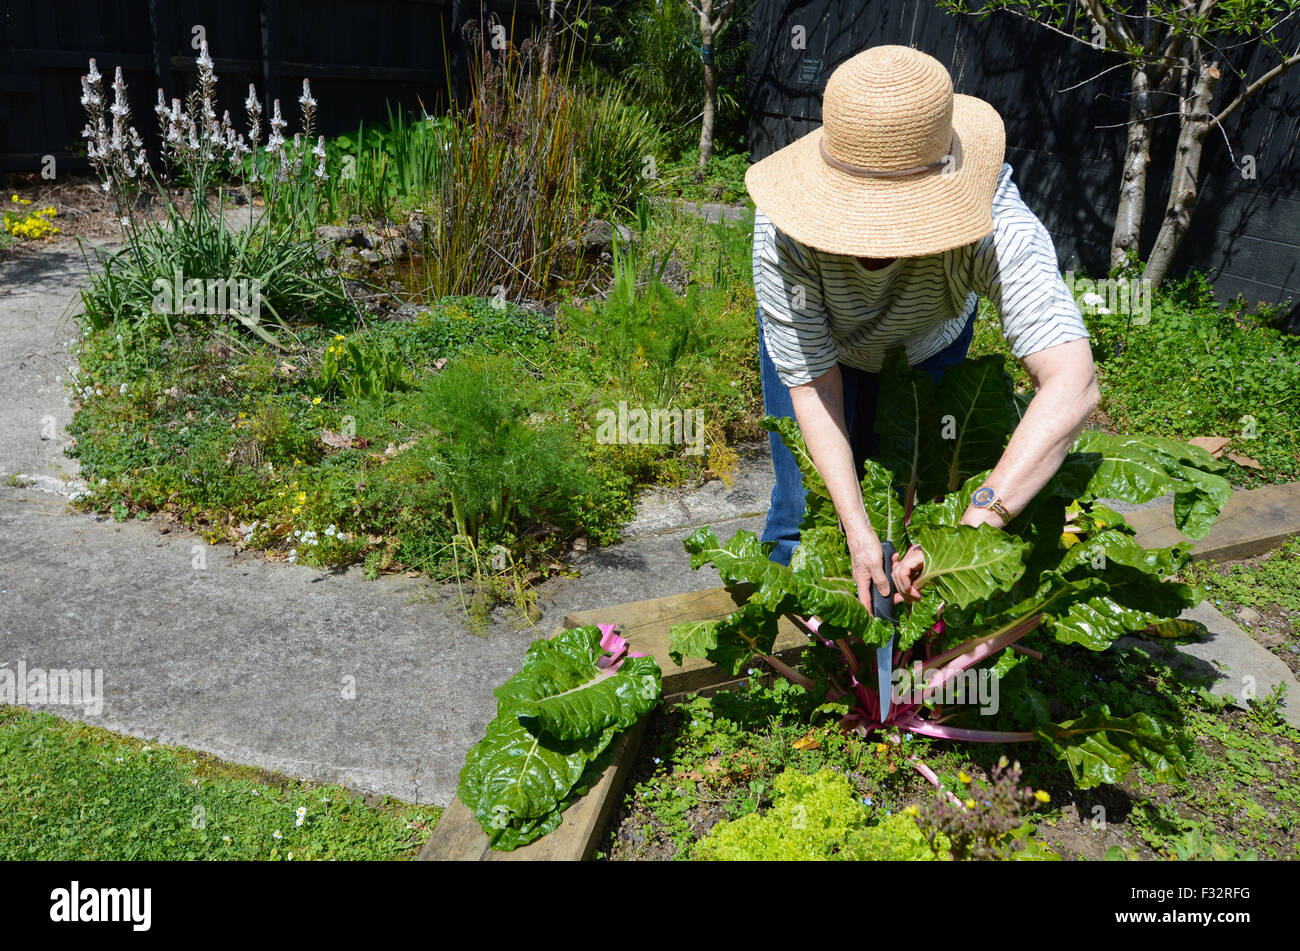 One mature woman (60s - 70s) wearing a hat cutting fresh Silverbeet plant working in the garden. - Stock Image